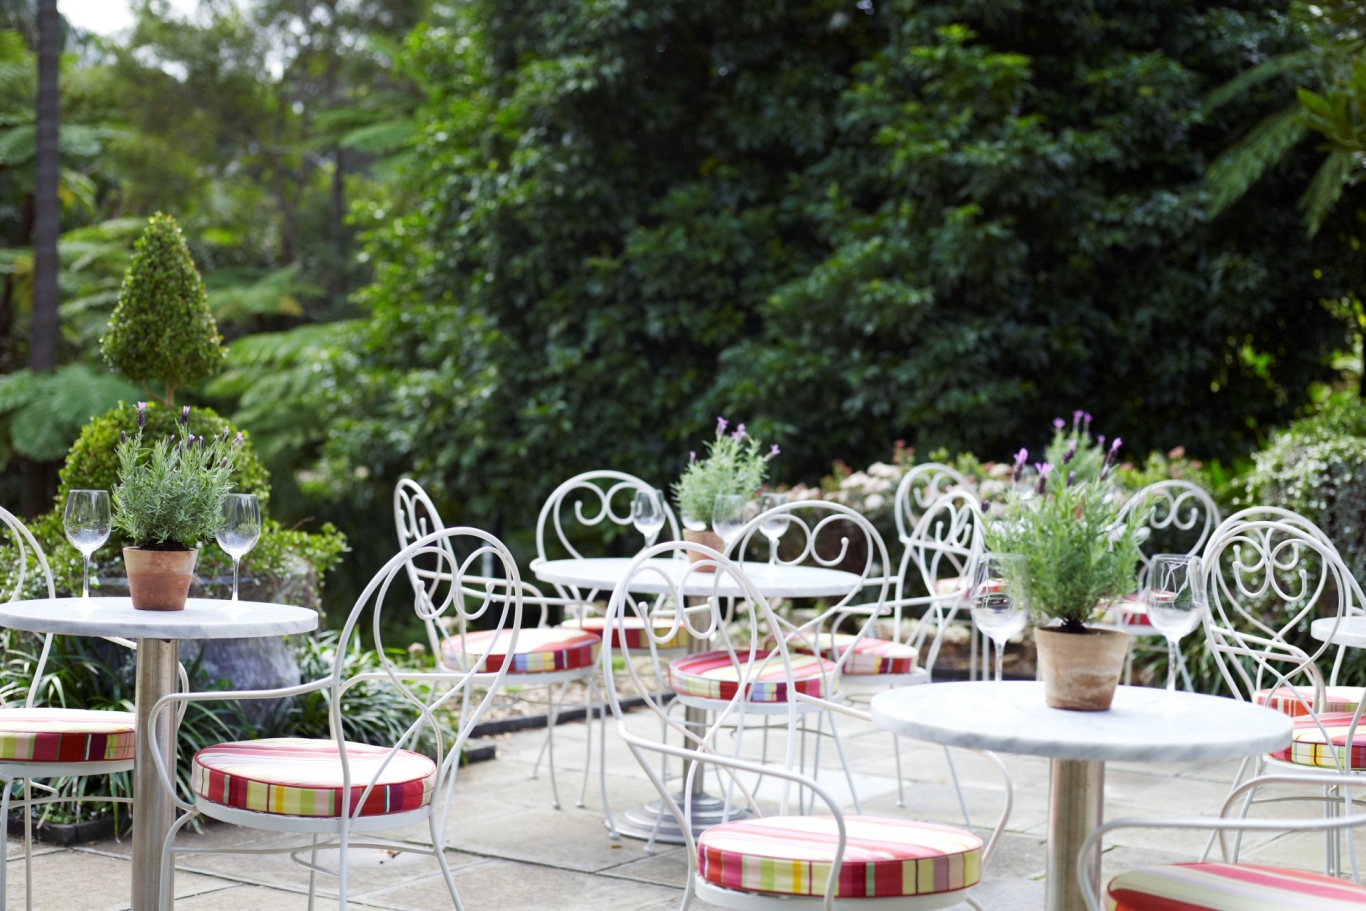 Vaucluse house garden tea rooms in summer. Pots of Lavender sit on the tables surrounded by green hedges